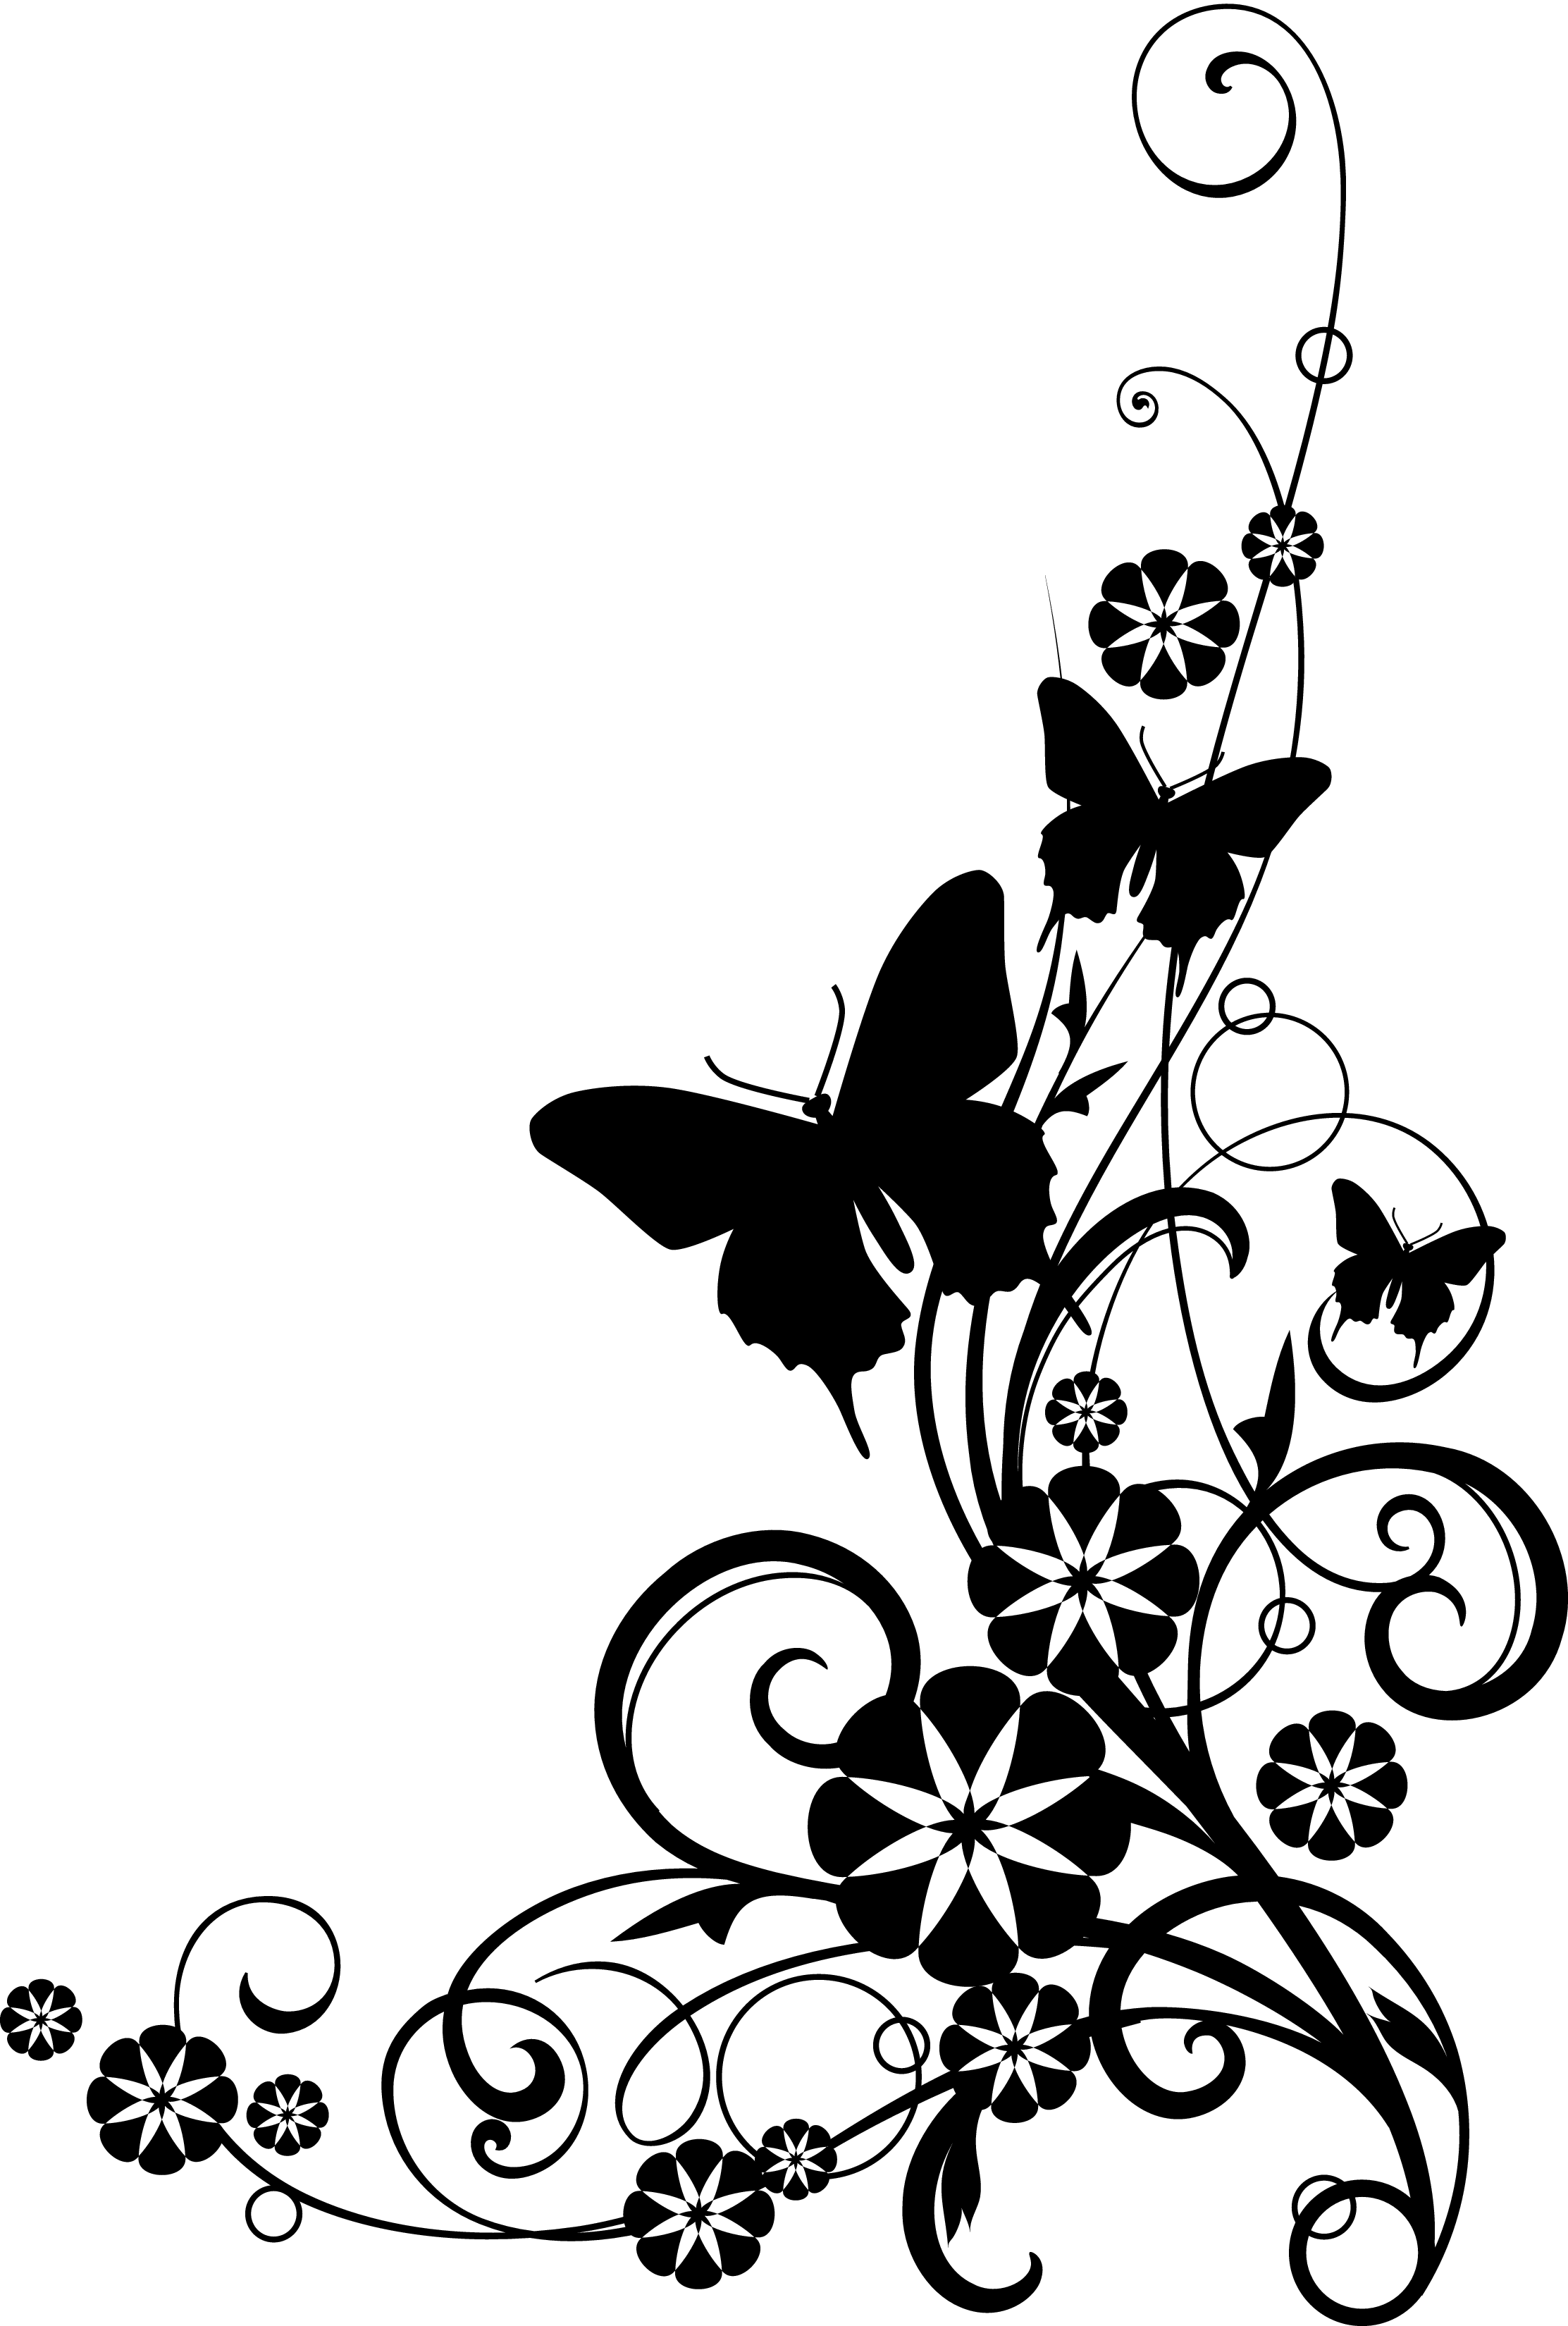 Line Art Border Designs : Border line art design black and white clipart best